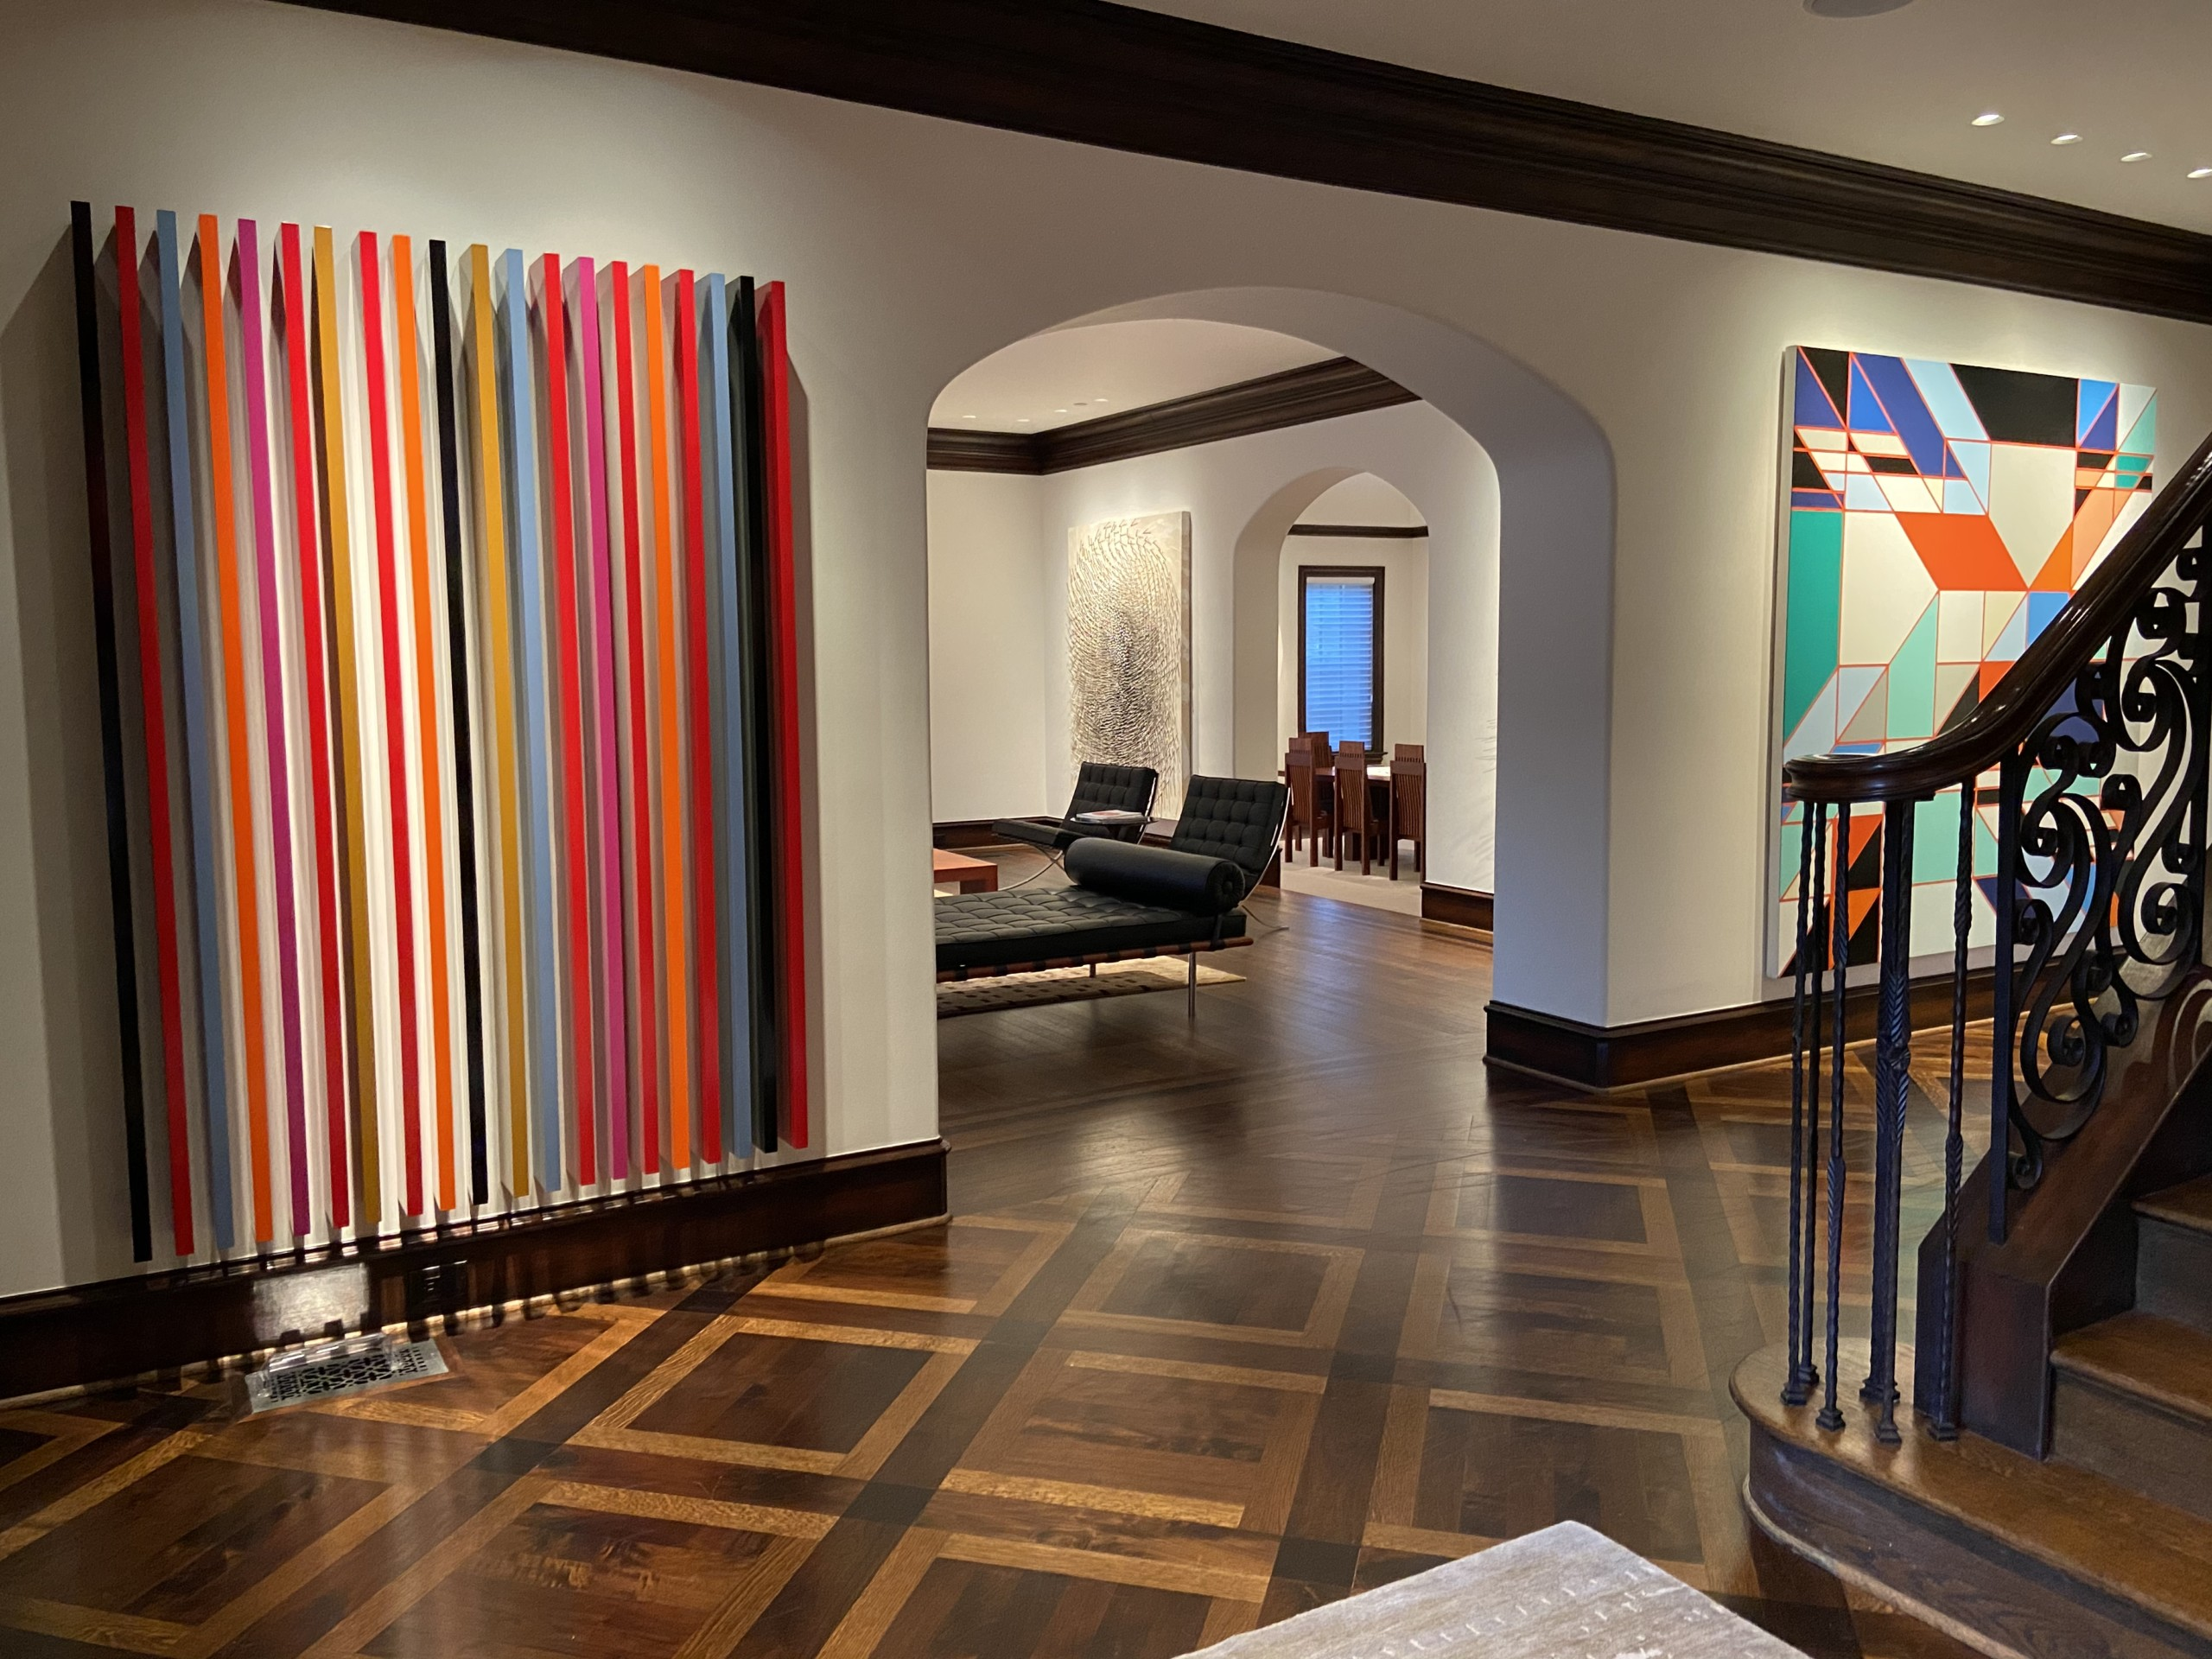 art collector's foyer with glimpse into living room space, with abstract artwork on walls Mark Giambrone